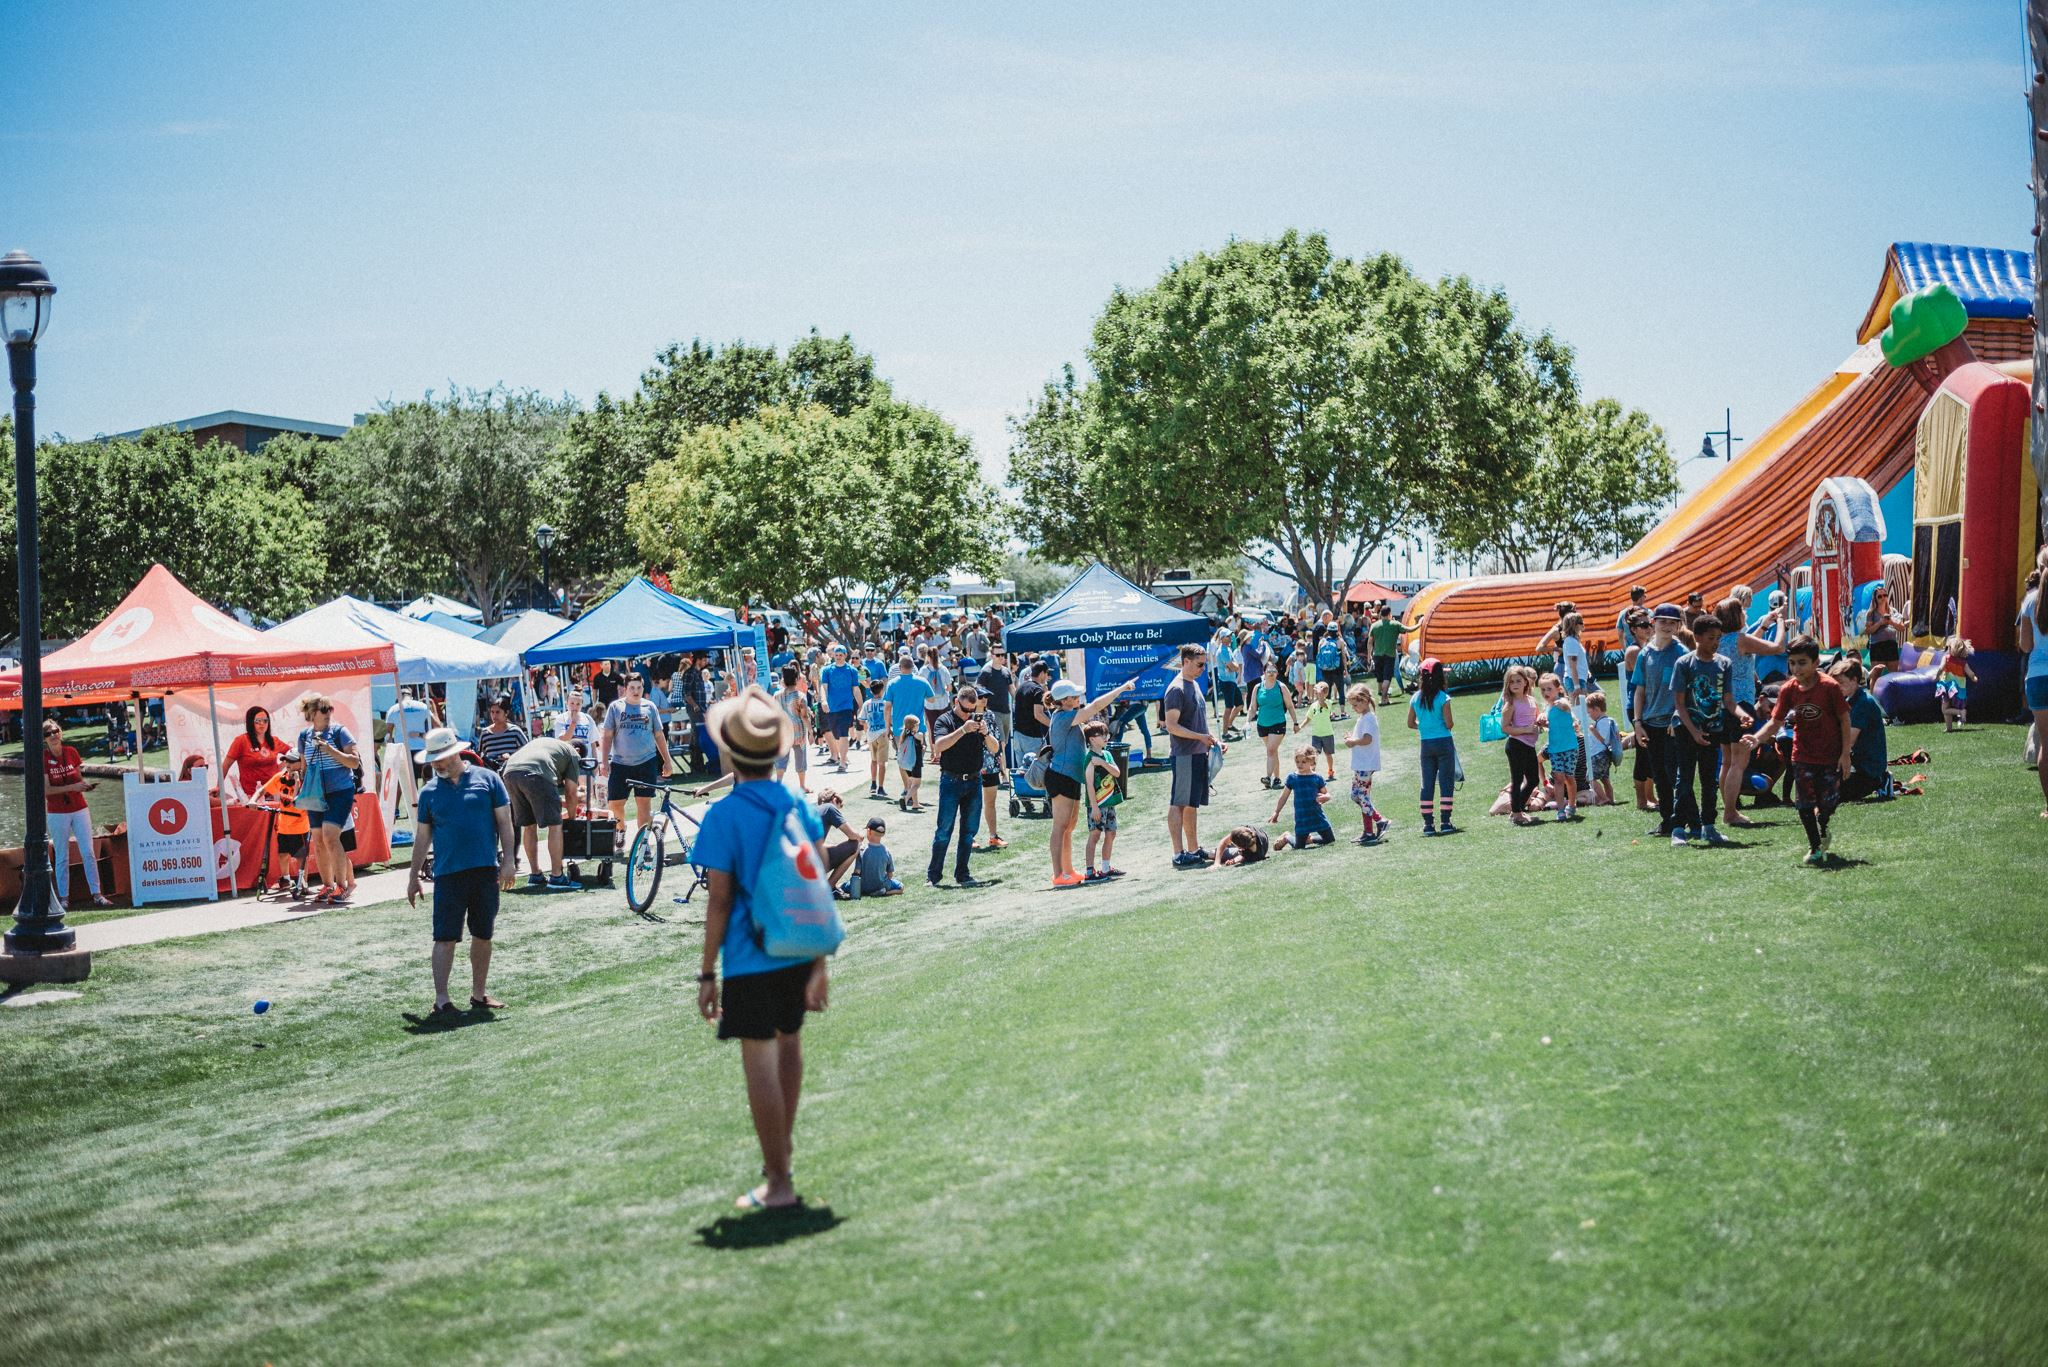 Wide Shot of Vendor Tents and Inflatables